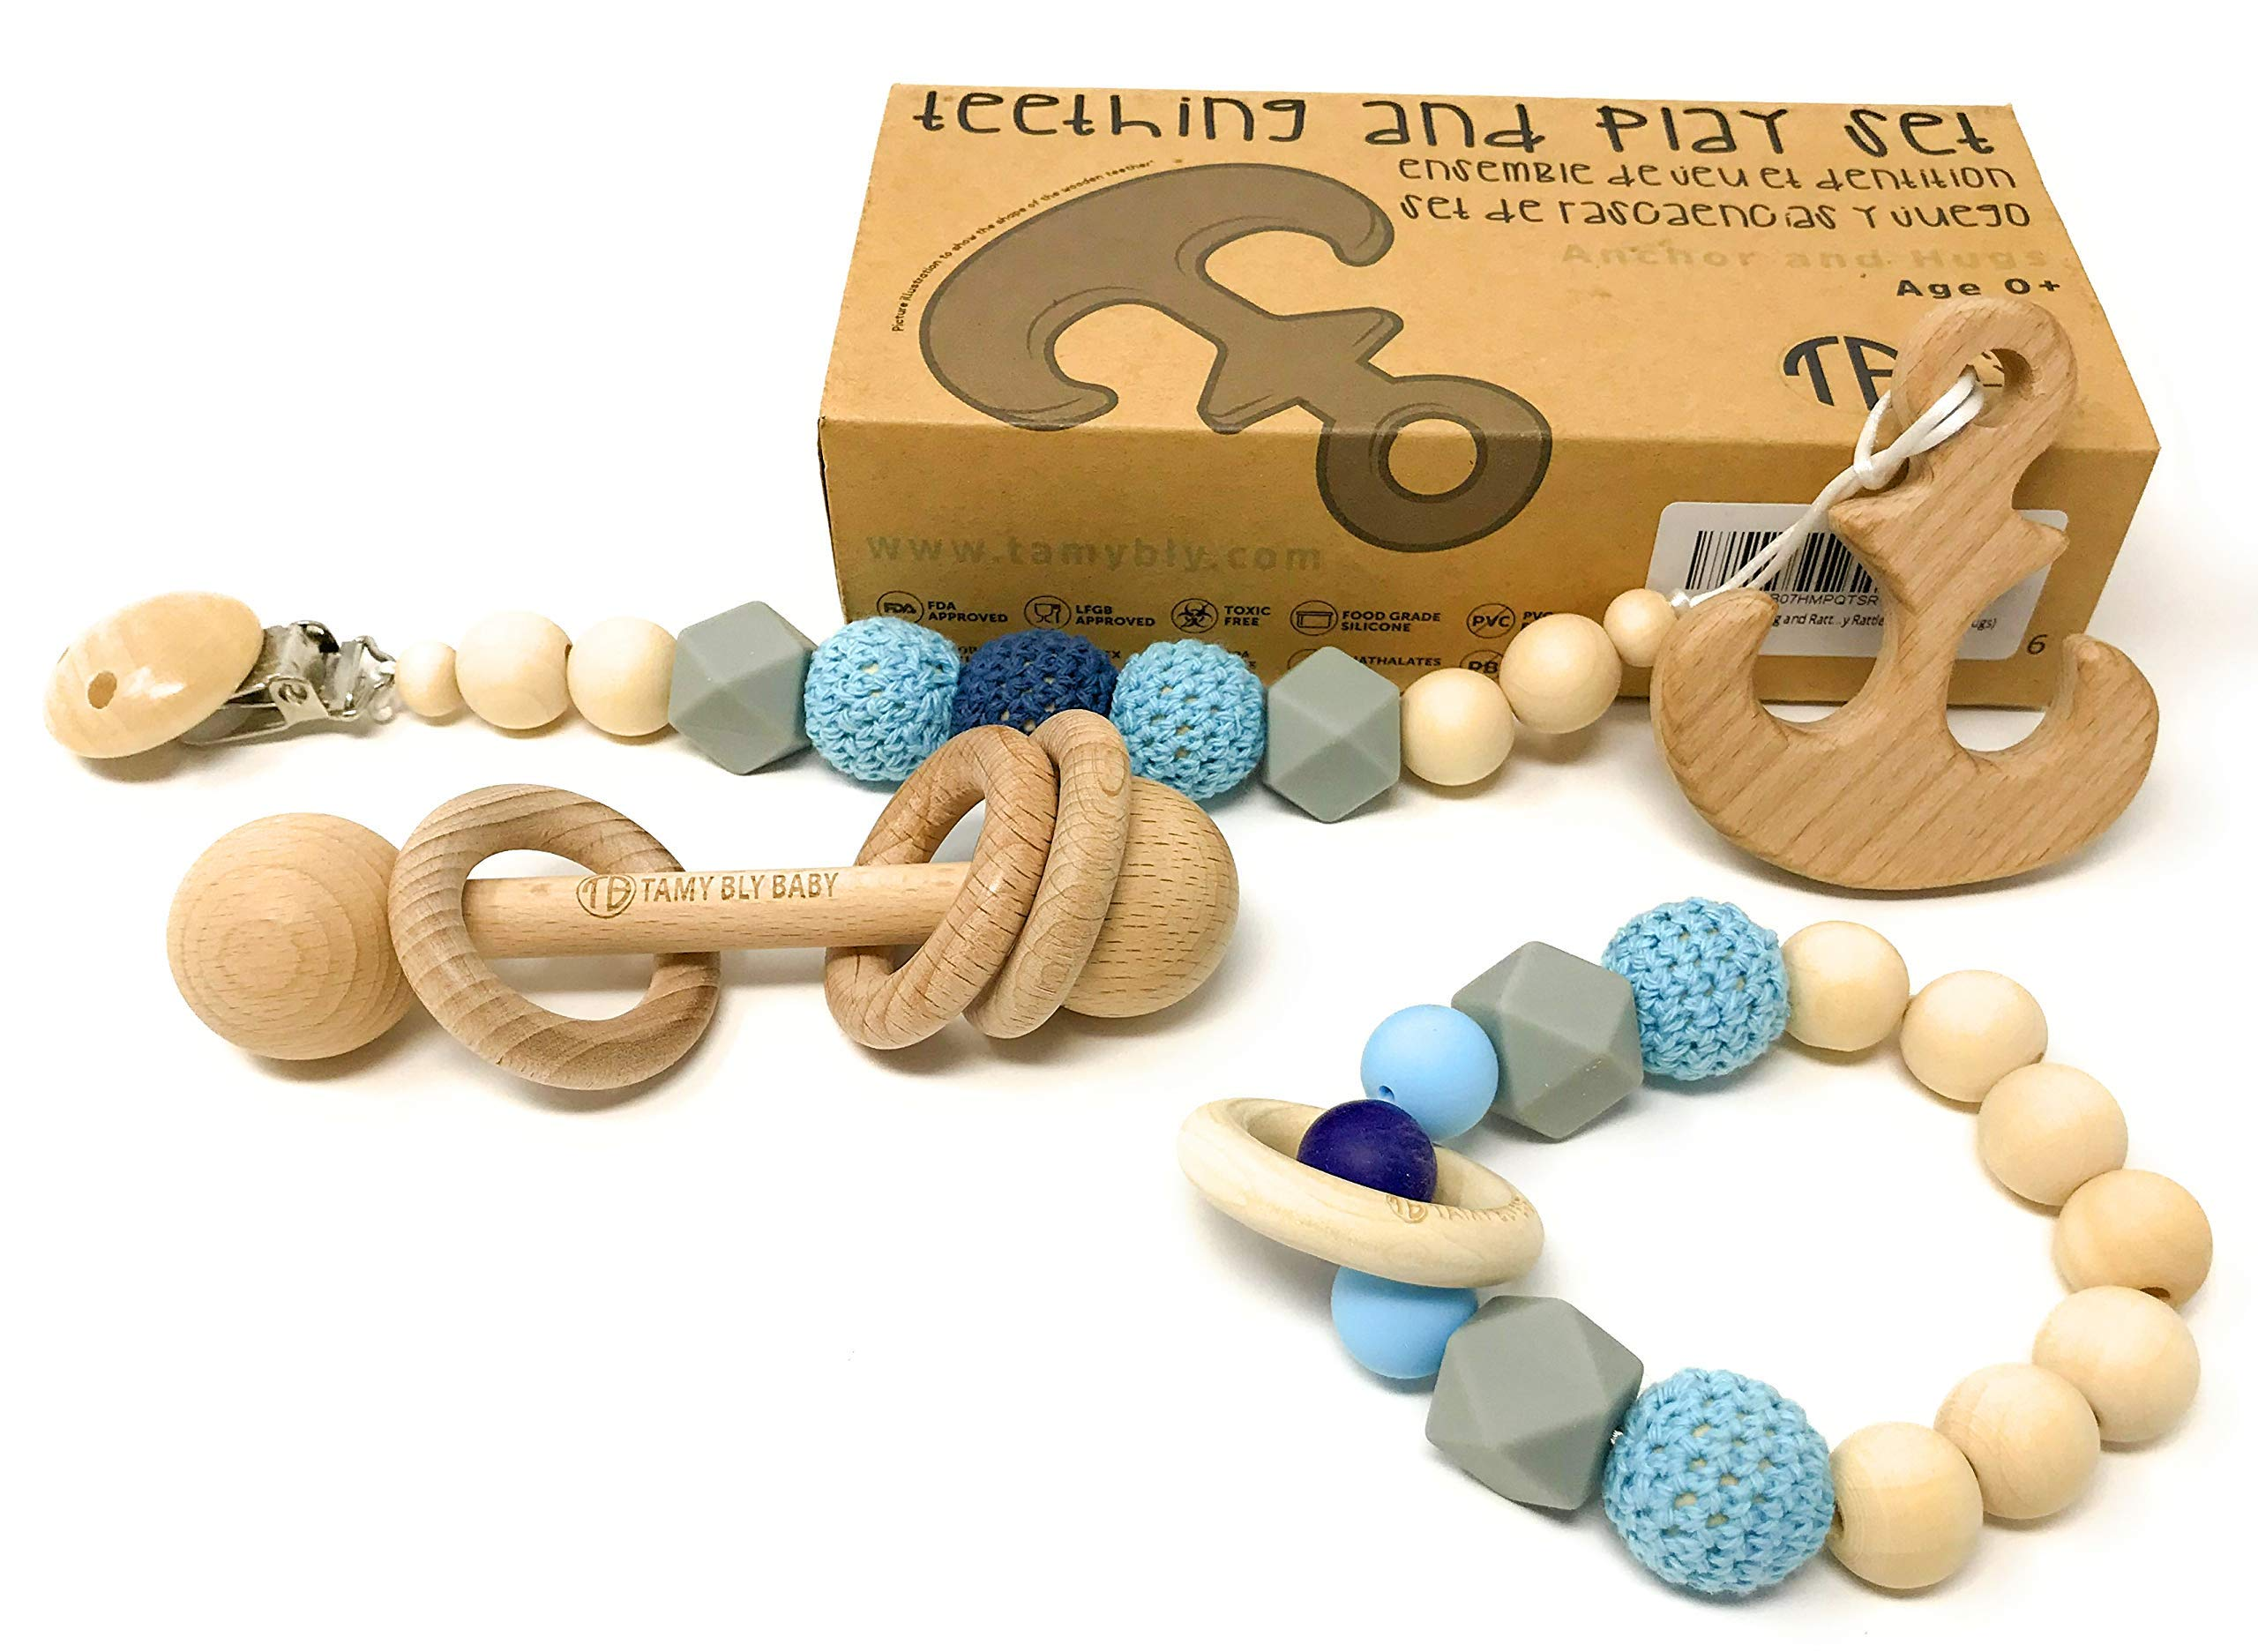 Tamy Bly Natural Wood & Silicone Pacifier Clip Teether, Teething Bracelet, Wooden Teethers, Wood Teething Rings,Updated Assembled Wood Teething Rattle|5pcs Baby Teether Toys Set|BPA Free|Anchor & Hugs